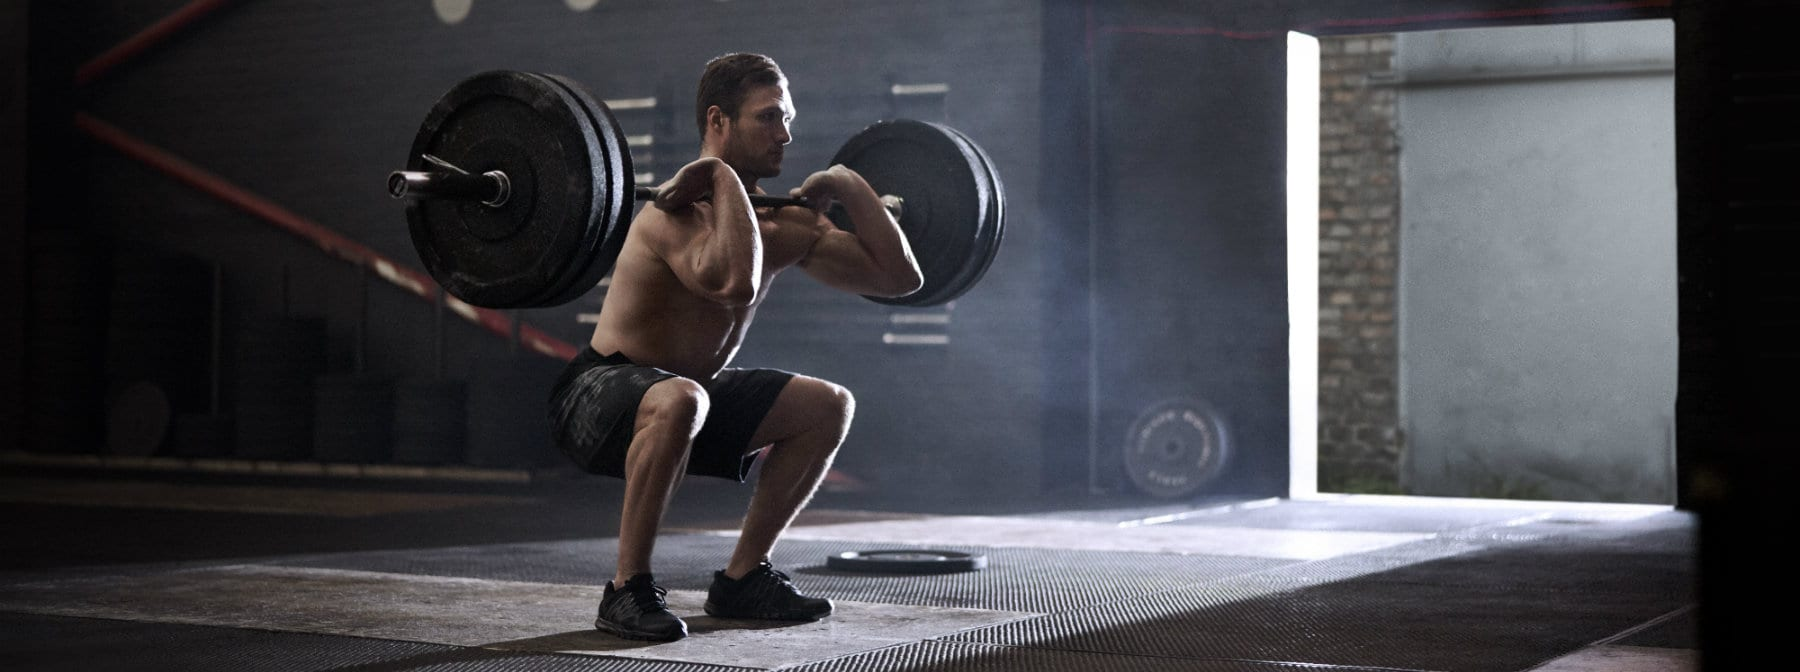 Cross Training Vs. Weight-Training — Which Is Better?